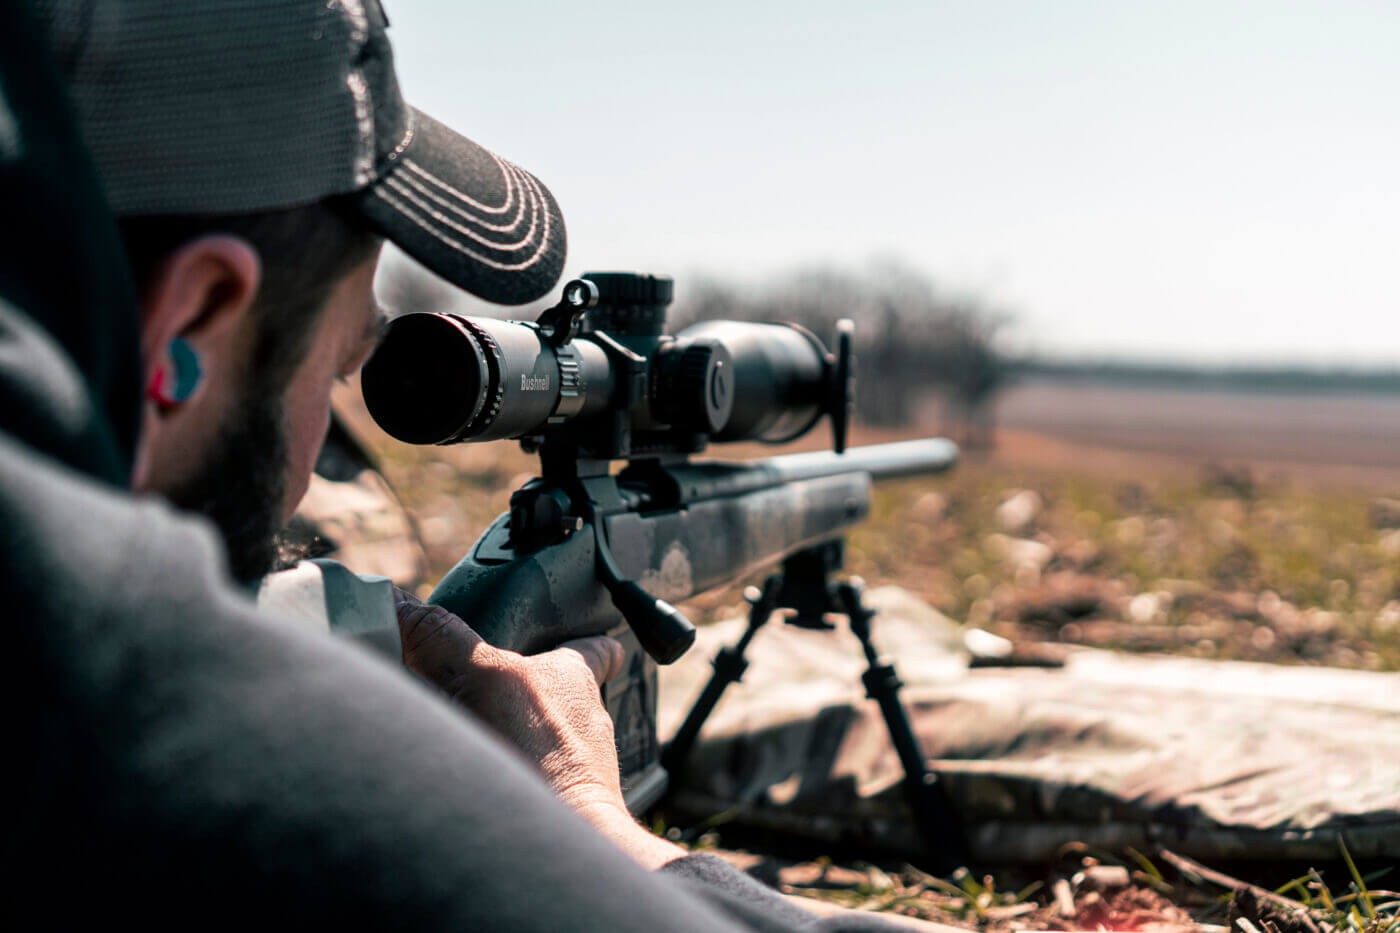 Winchester Deer Season XP hunting ammo test in Springfield Waypoint rifle